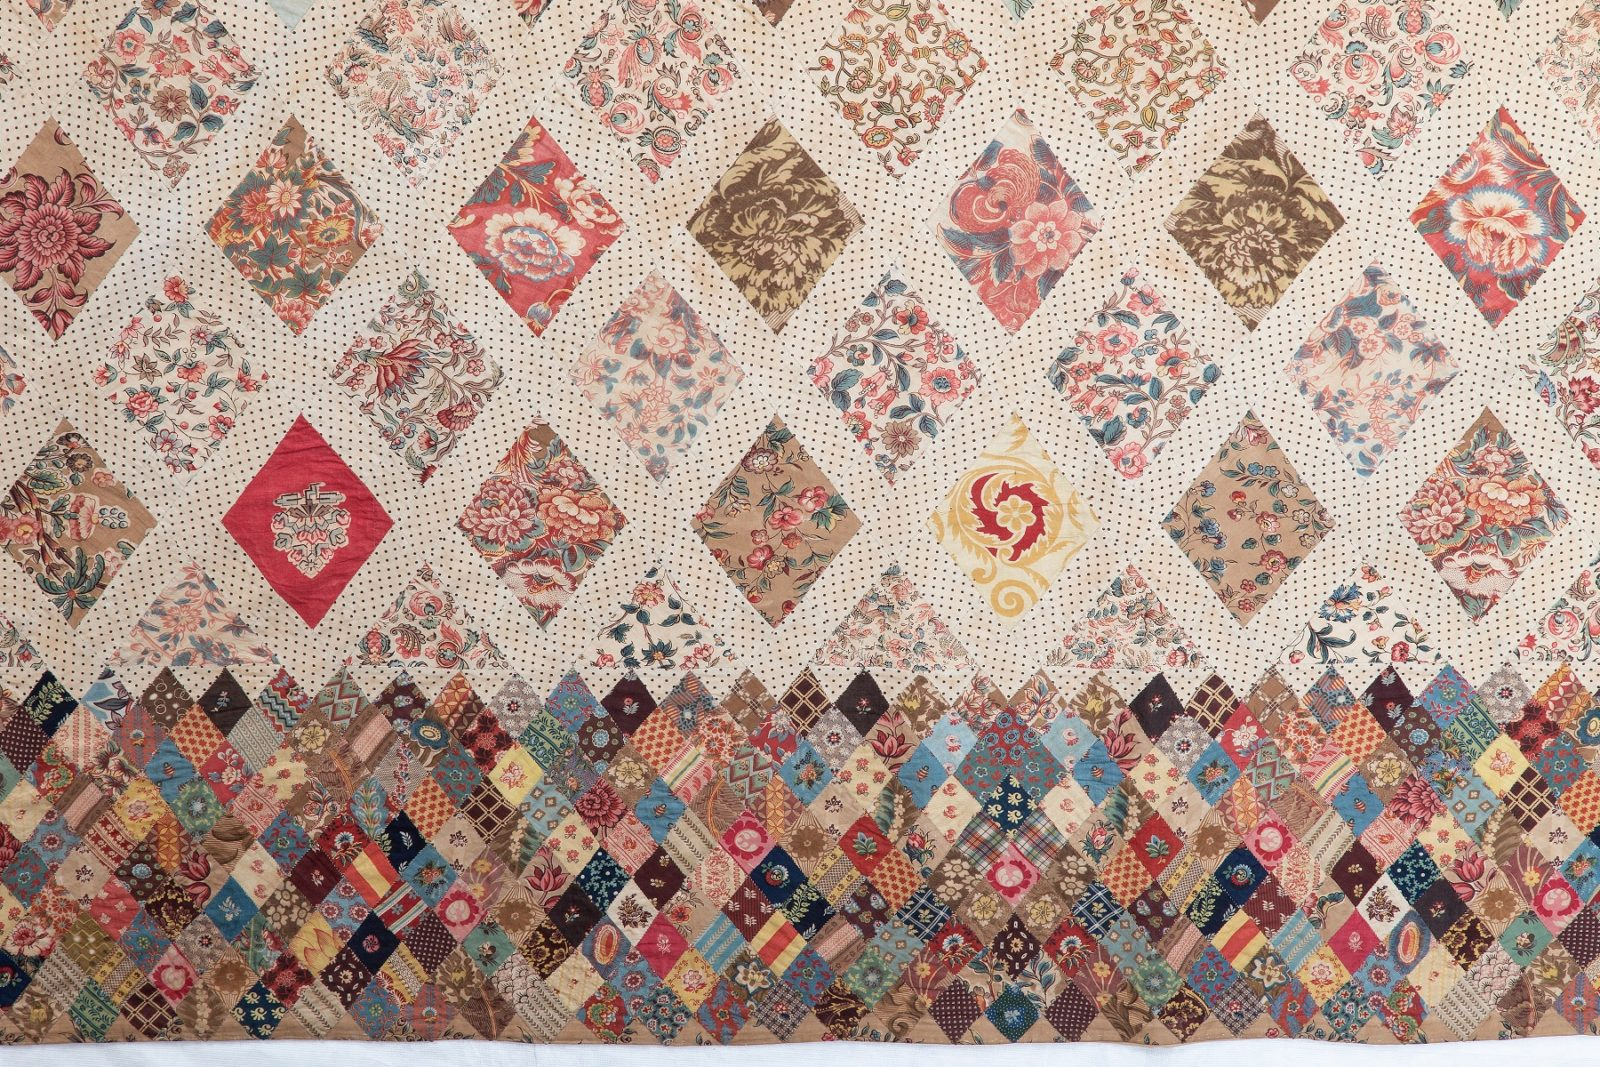 Close up of the Austen family patchwork coverlet, showing border made of small diamonds